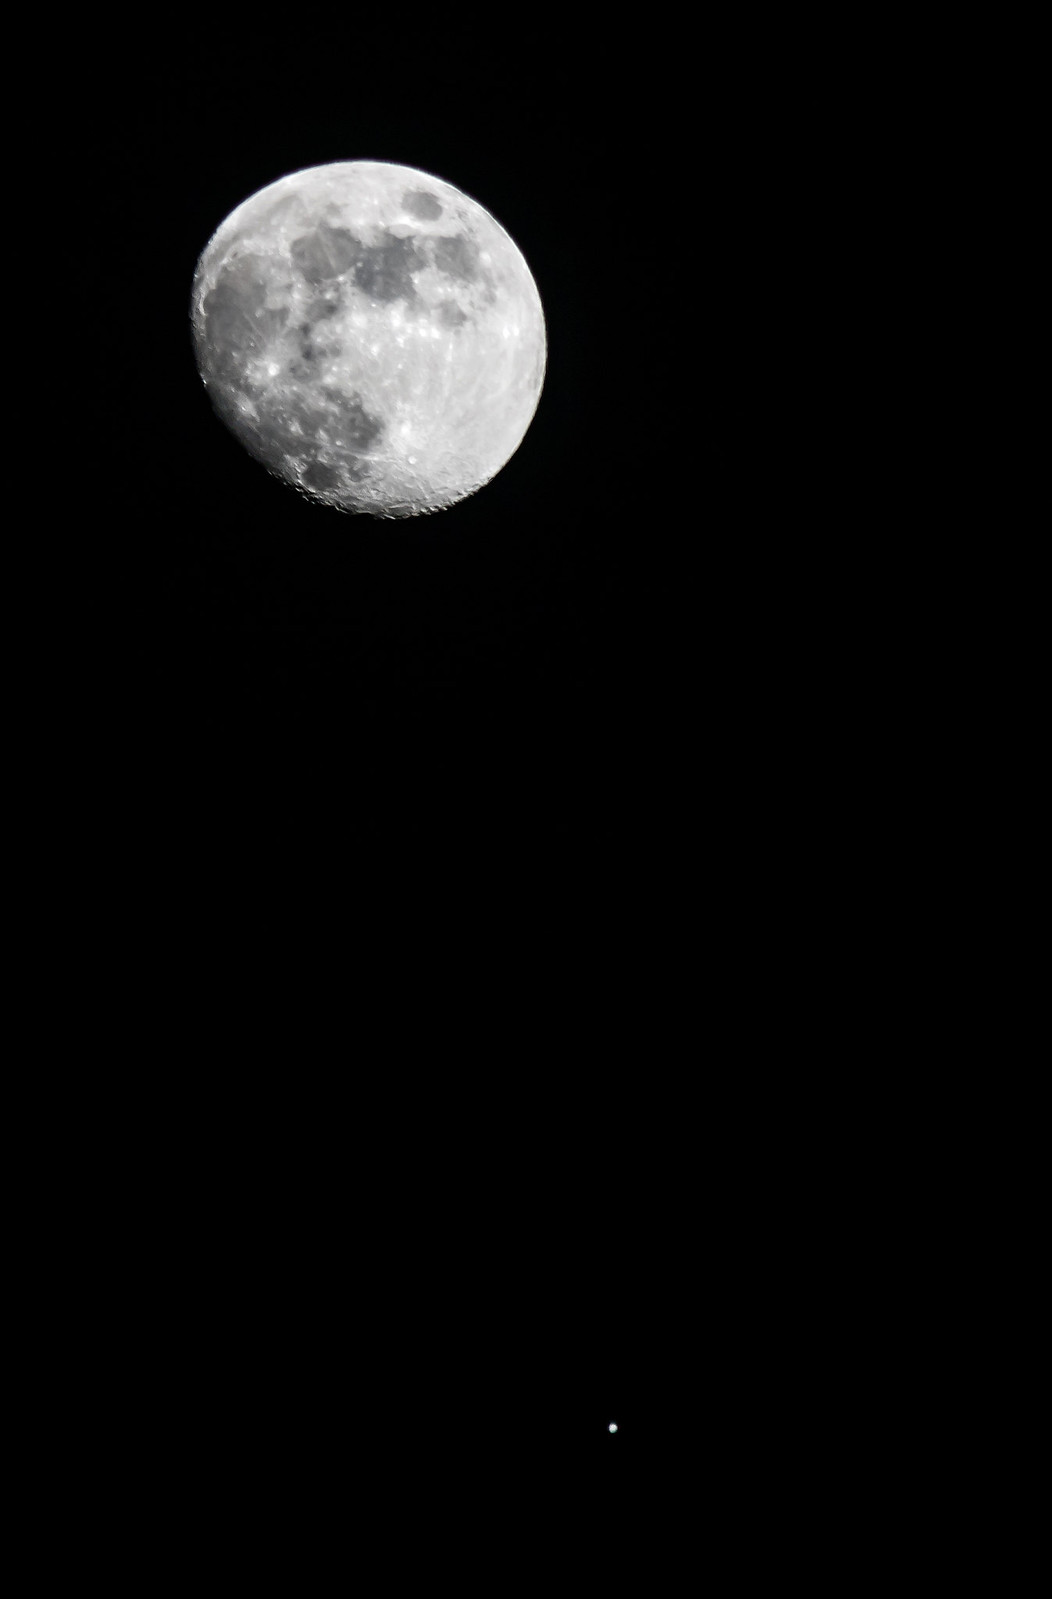 The Moon and Spica, Canon EOS 760D, Canon EF 70-300mm f/4.5-5.6 DO IS USM